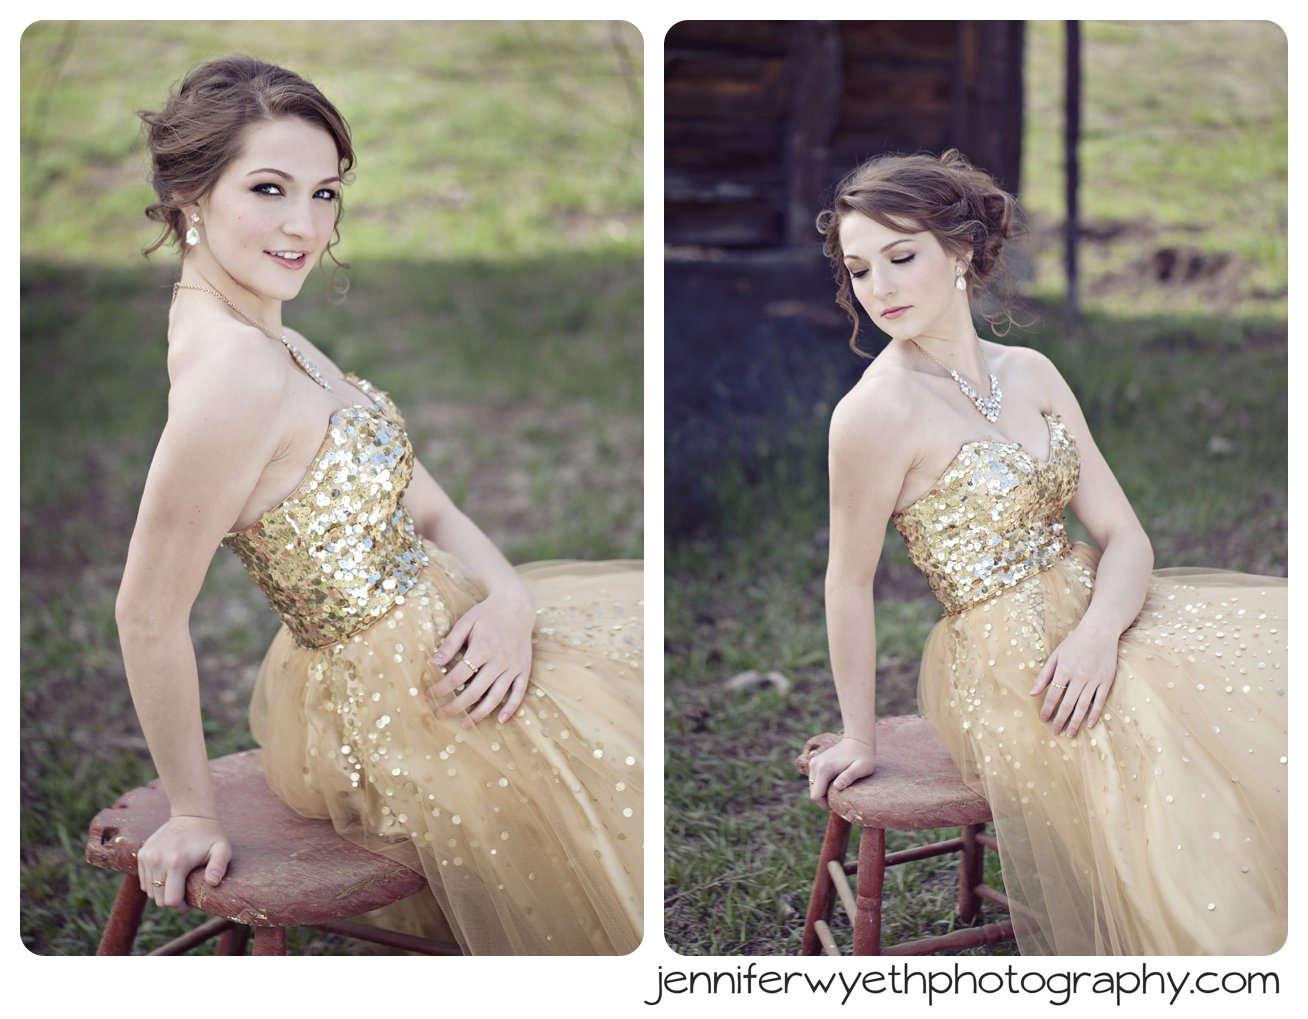 girl in prom dress sitting on a rugged stool in field